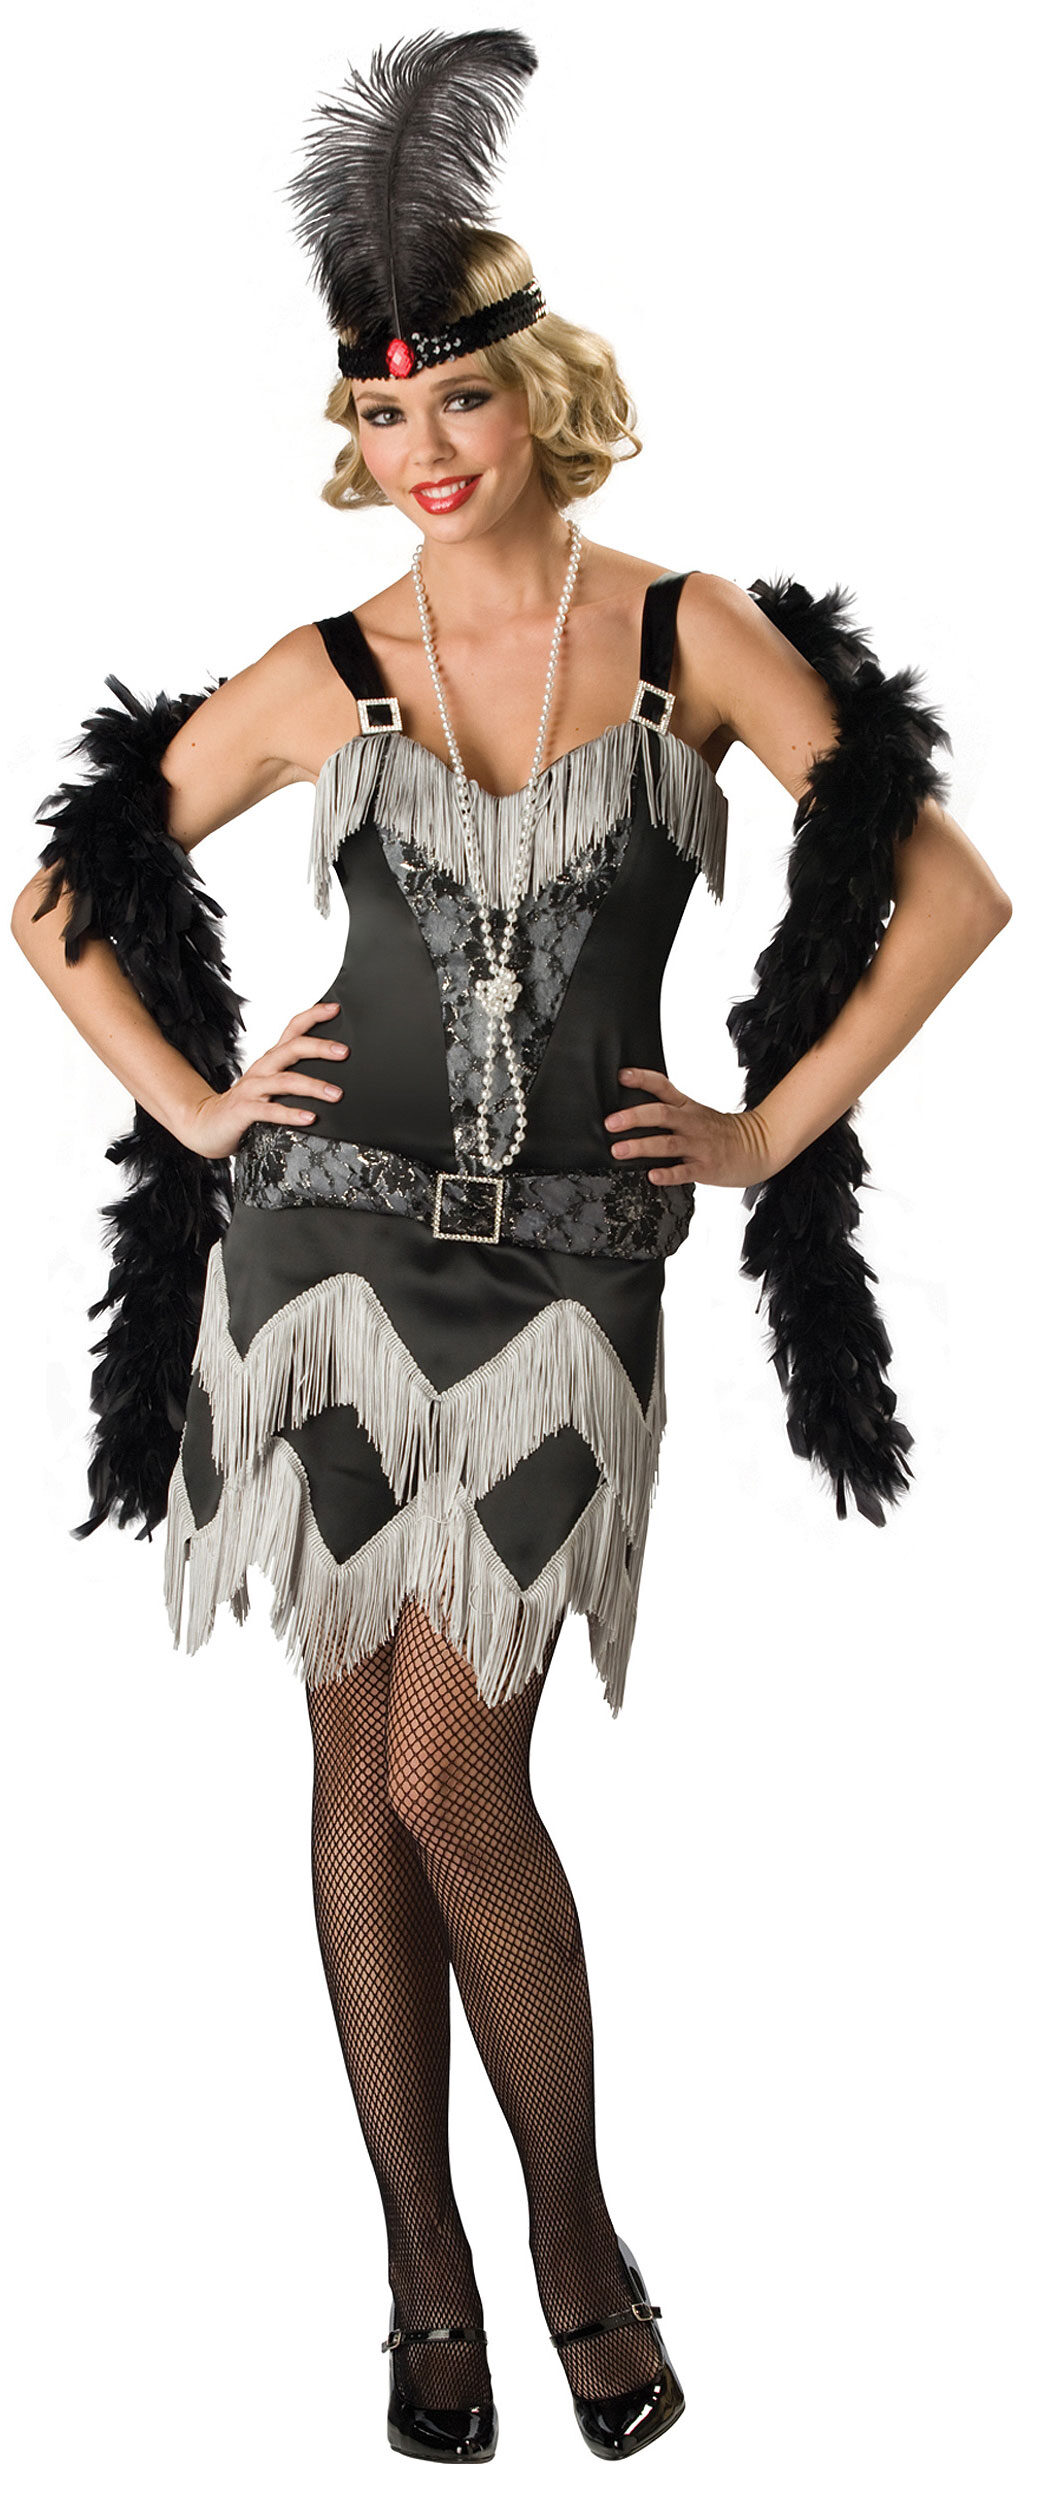 5 Top Halloween Costumes for Everyone - Mr. Costumes Blog